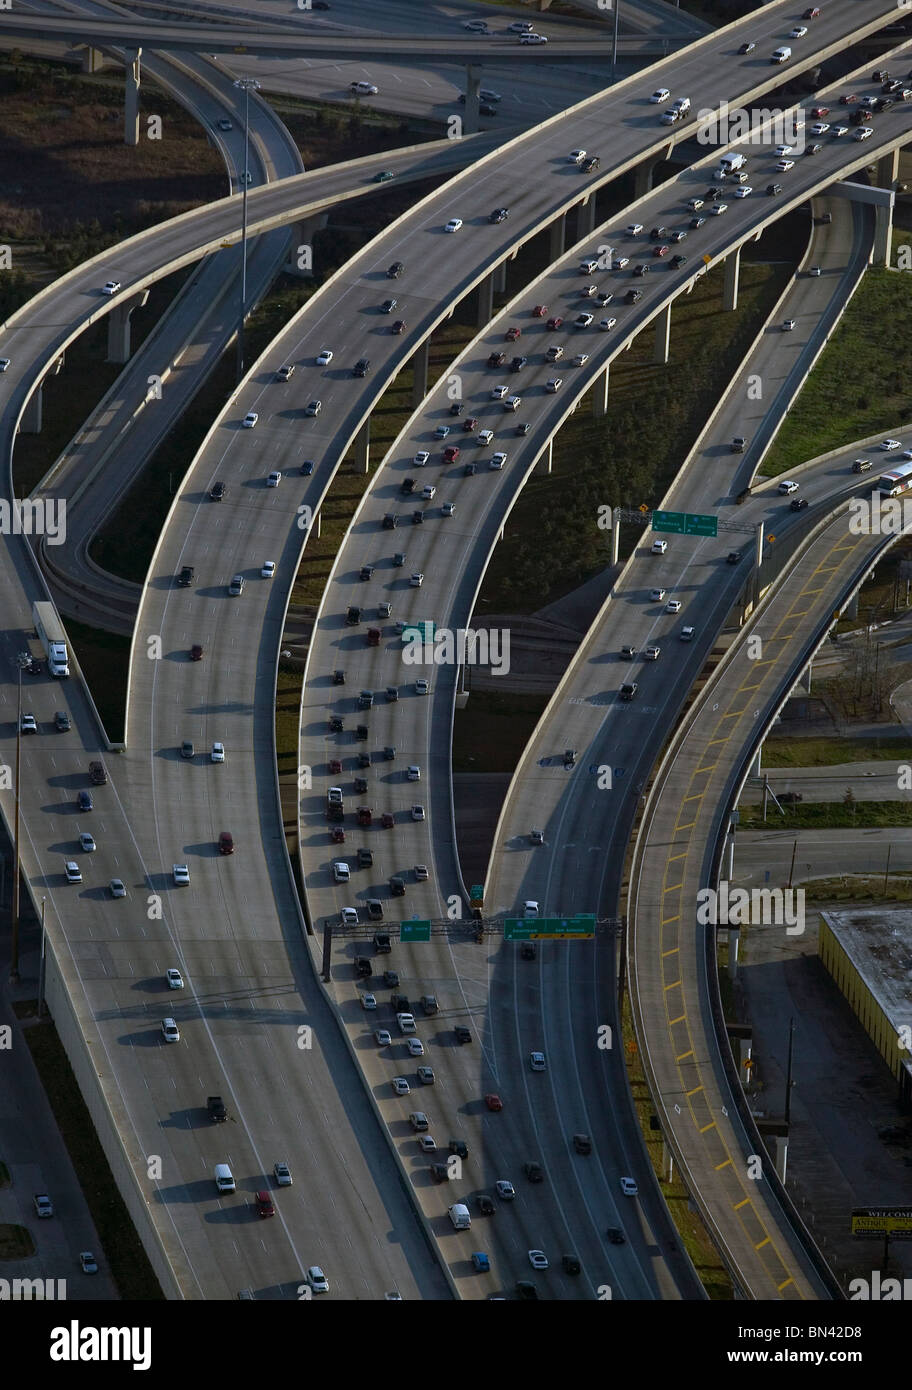 aerial view above heavy commuter automobile trafffic freeway Houston Texas - Stock Image